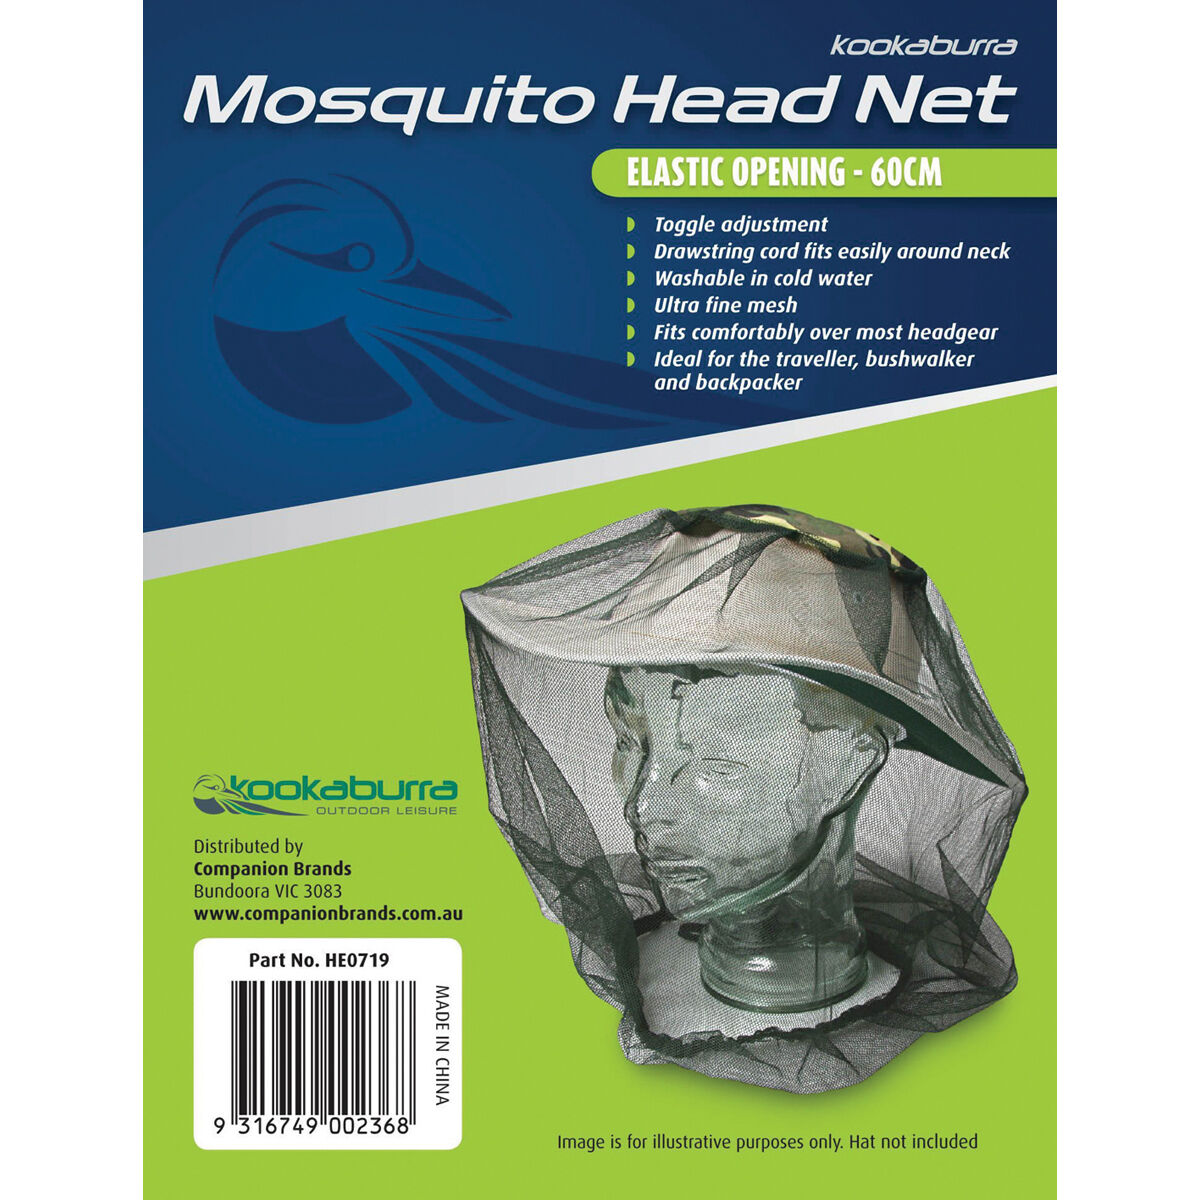 360 DEGREES INSECT NET MOSQUITO HEAD NET FLY SCREEN FACE COVER ULTRA FINE MESH